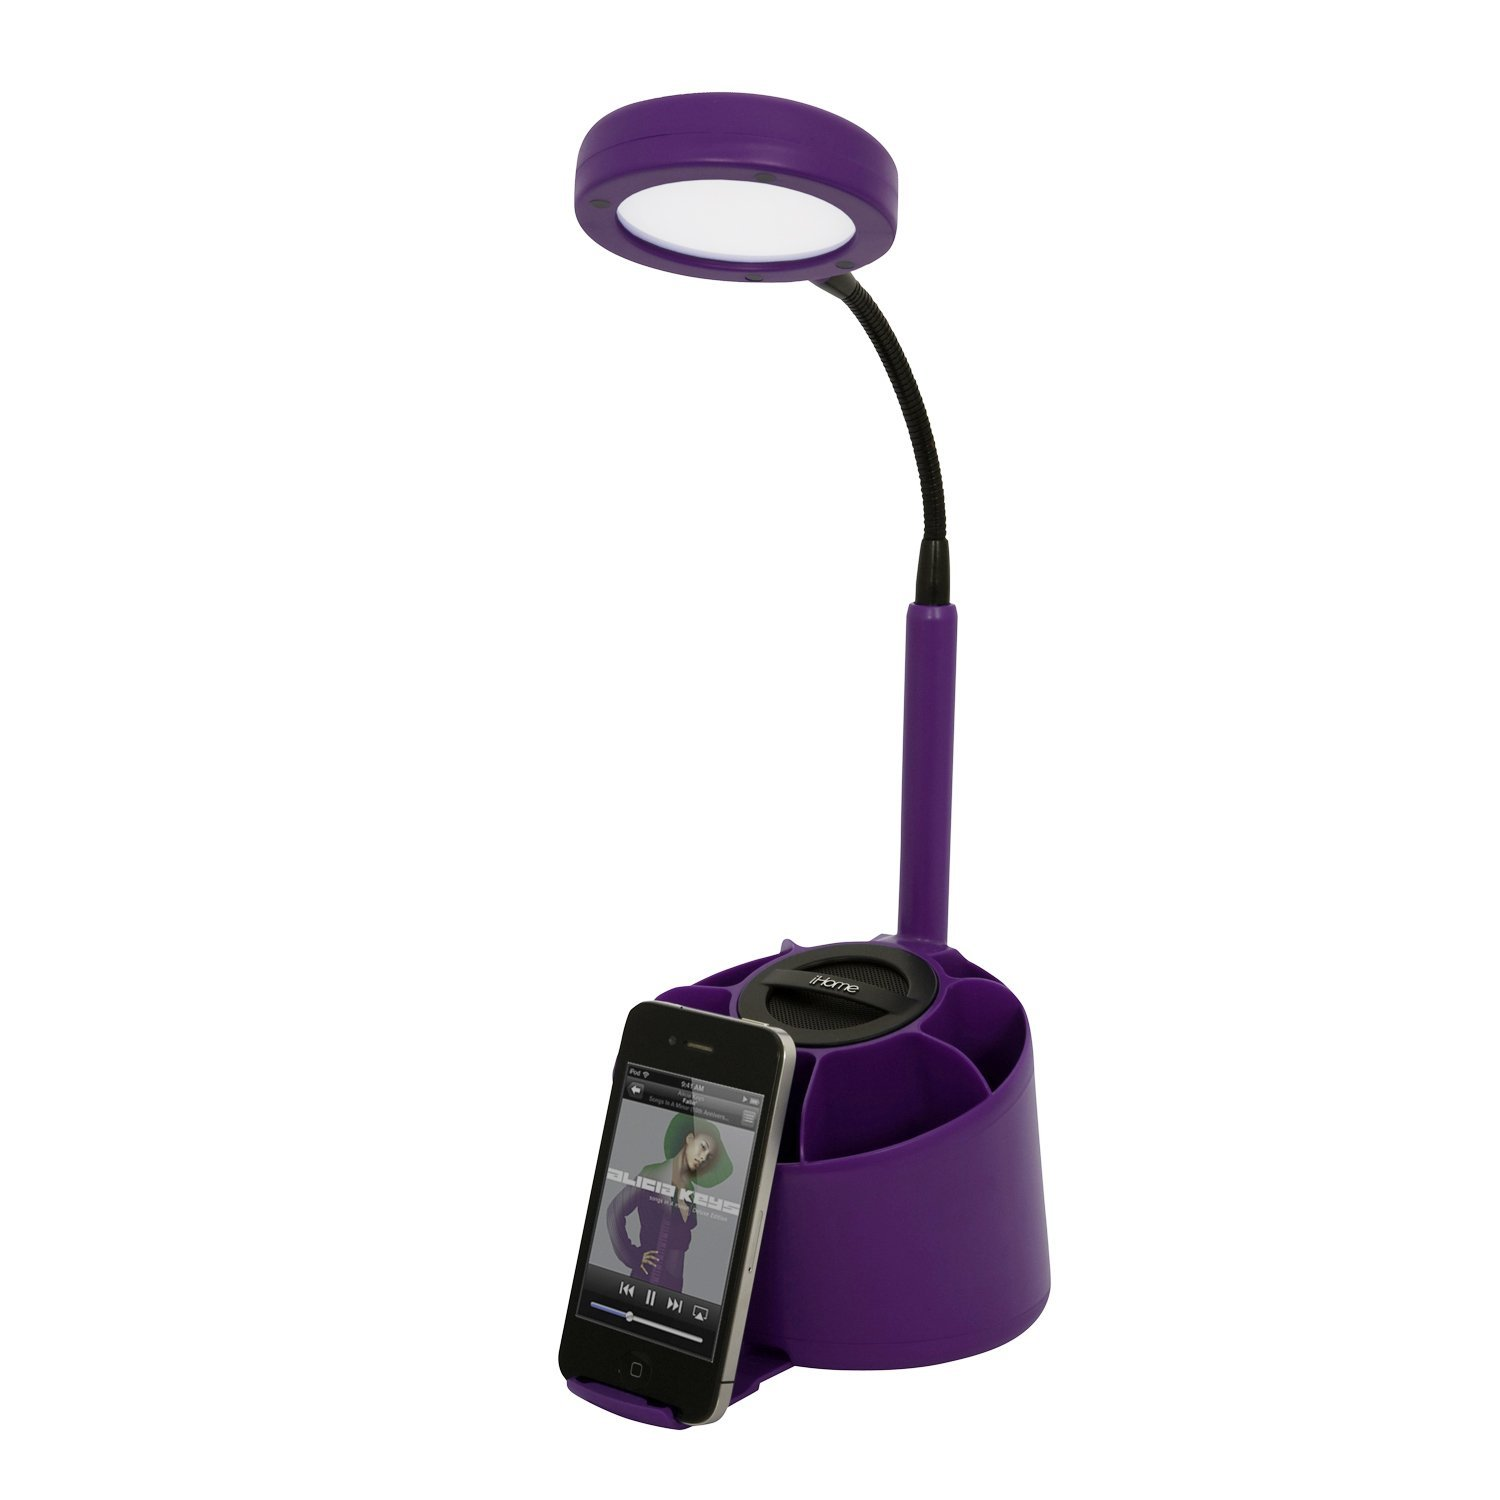 iHome Desk Lamp with Pen Organizer and Speaker